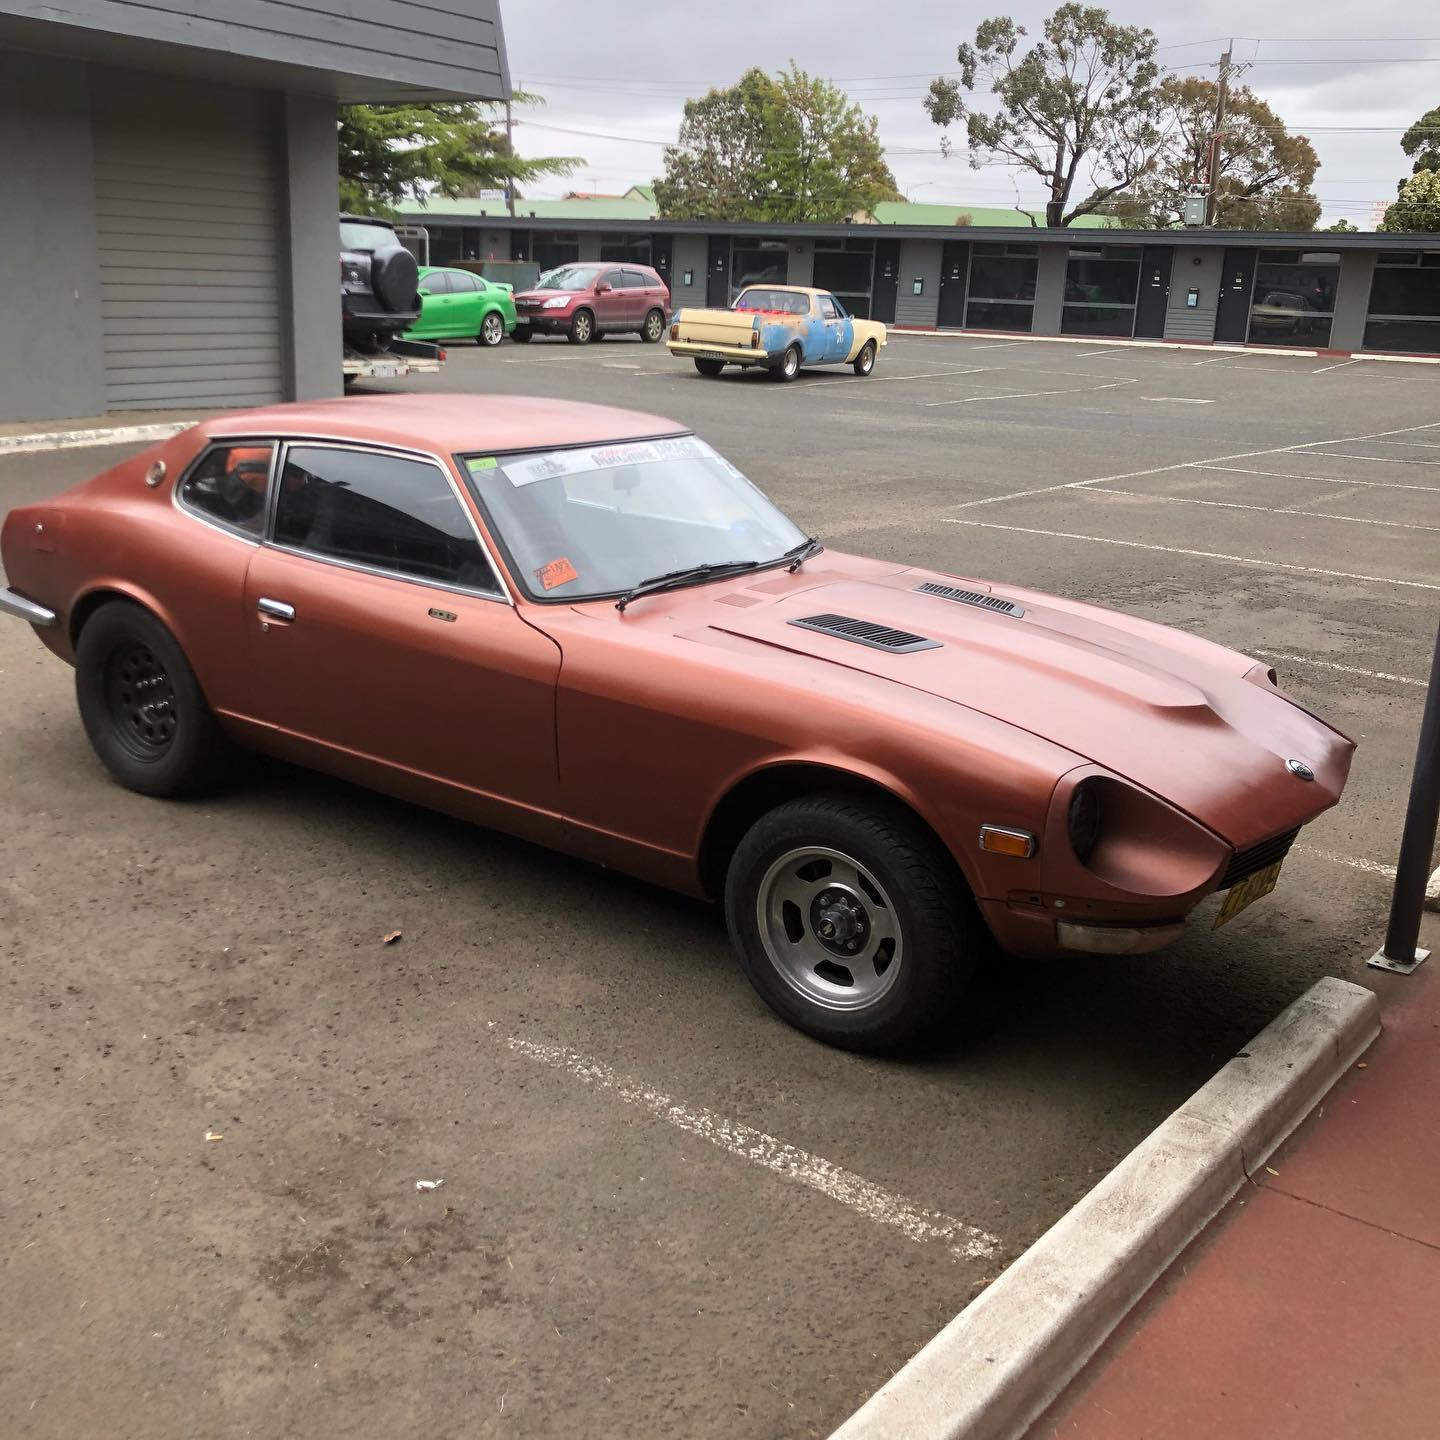 1977 Datsun 260Z with a turbo Barra inline-six